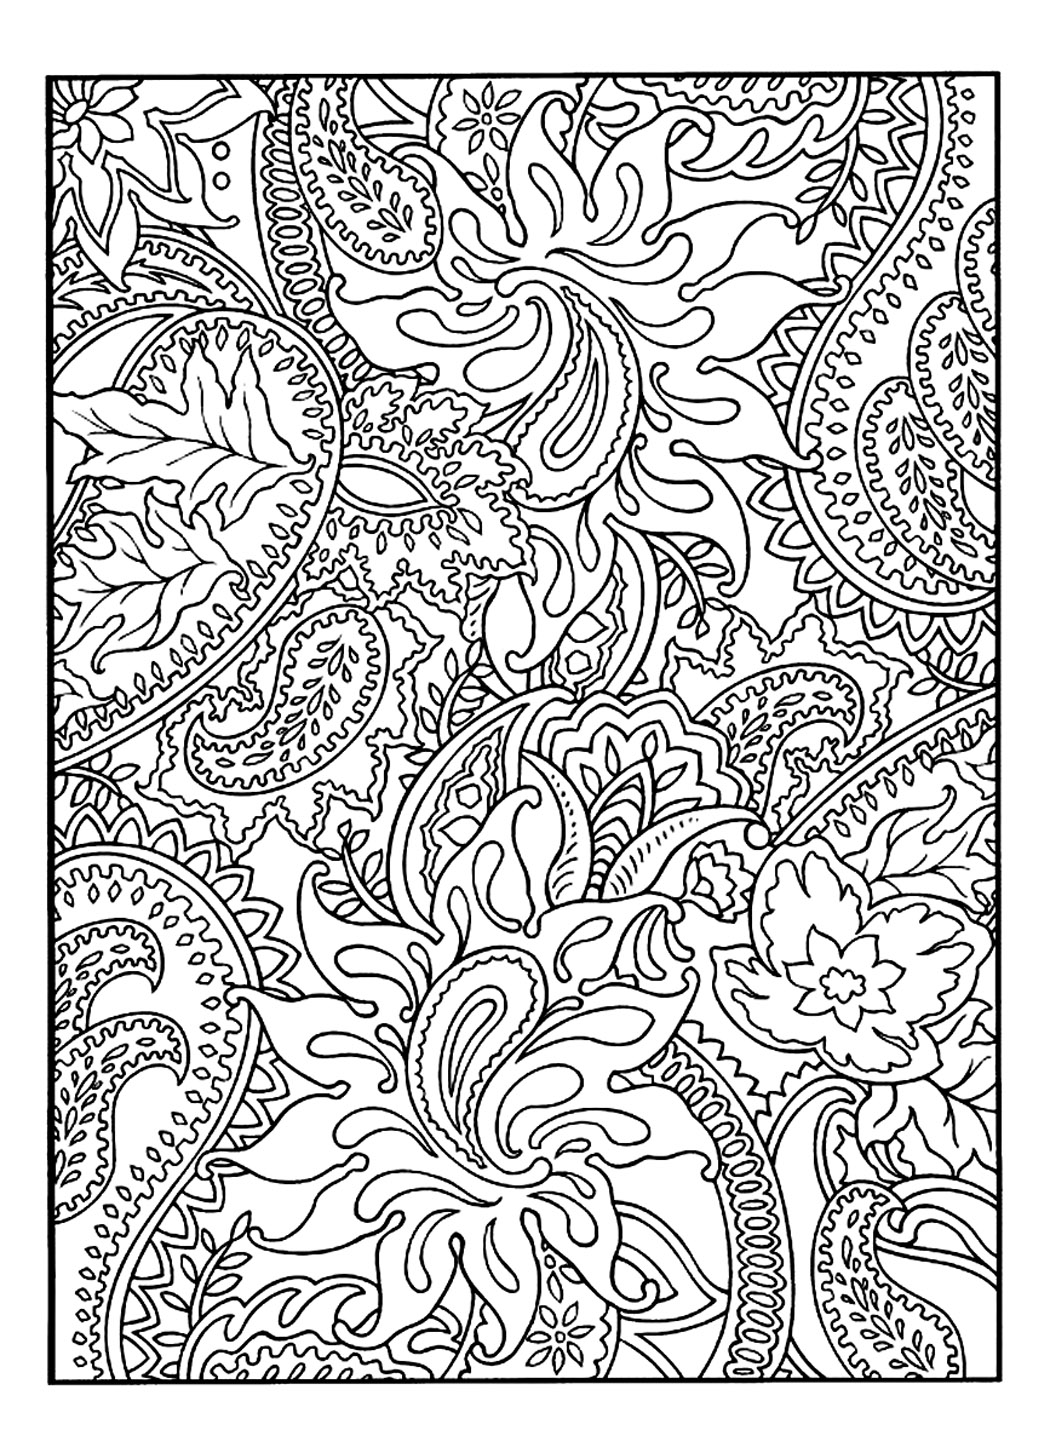 Beautiful Flowers coloring page